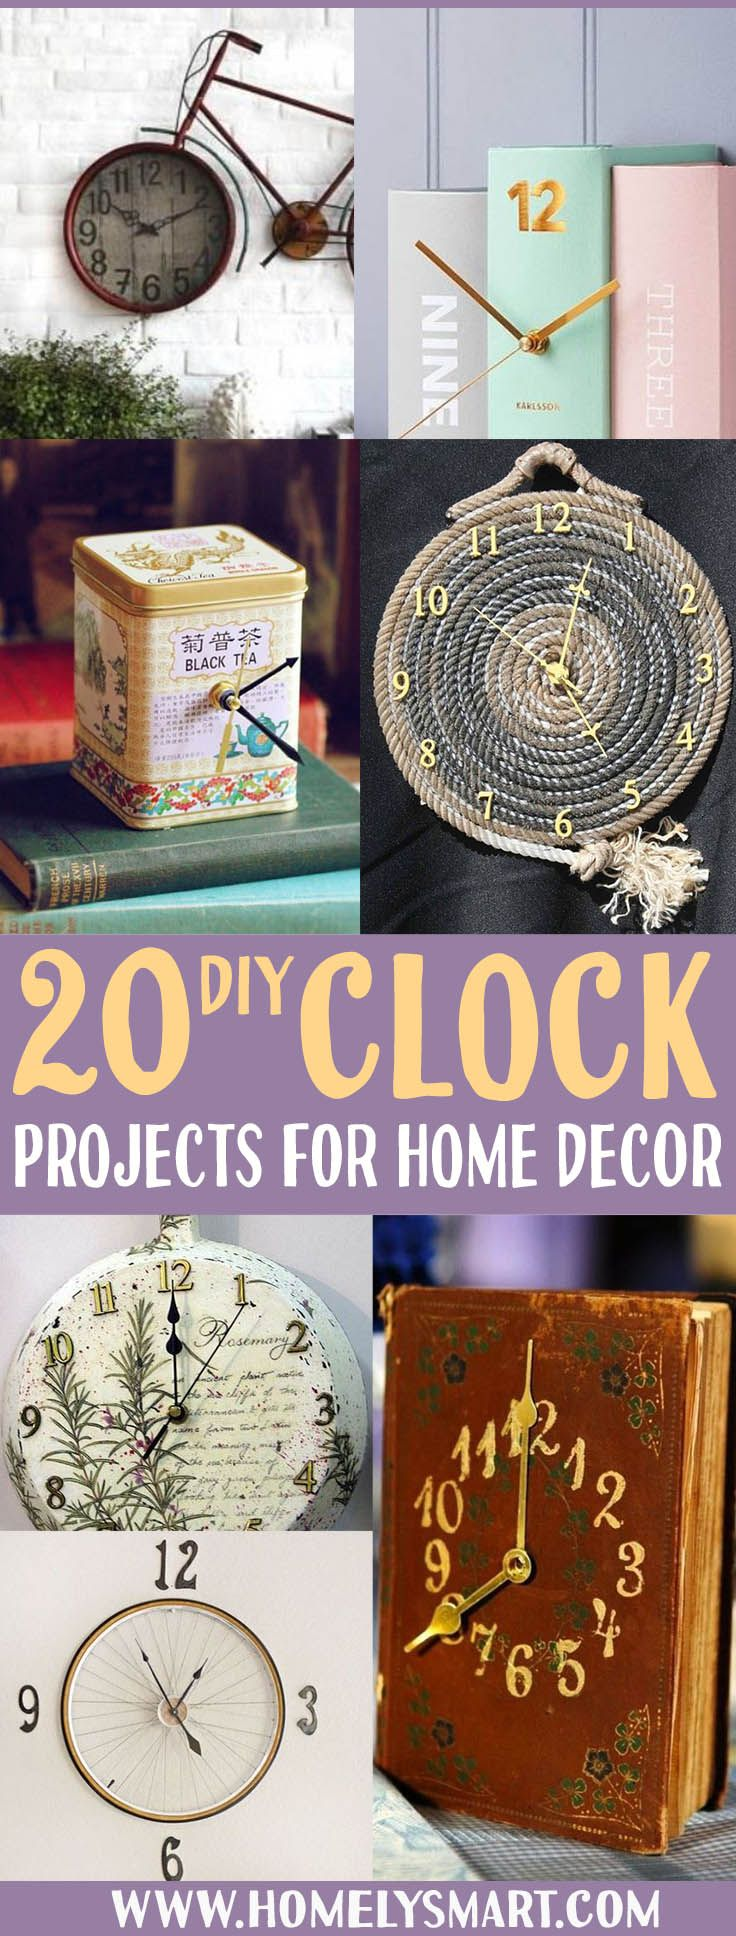 Clock is one of the easiest home decor object that you can build just about anything! Don't just have one that tells time, make one that tells time and decorate your house at the same time! See more inspirational ideas via homelysmart.com